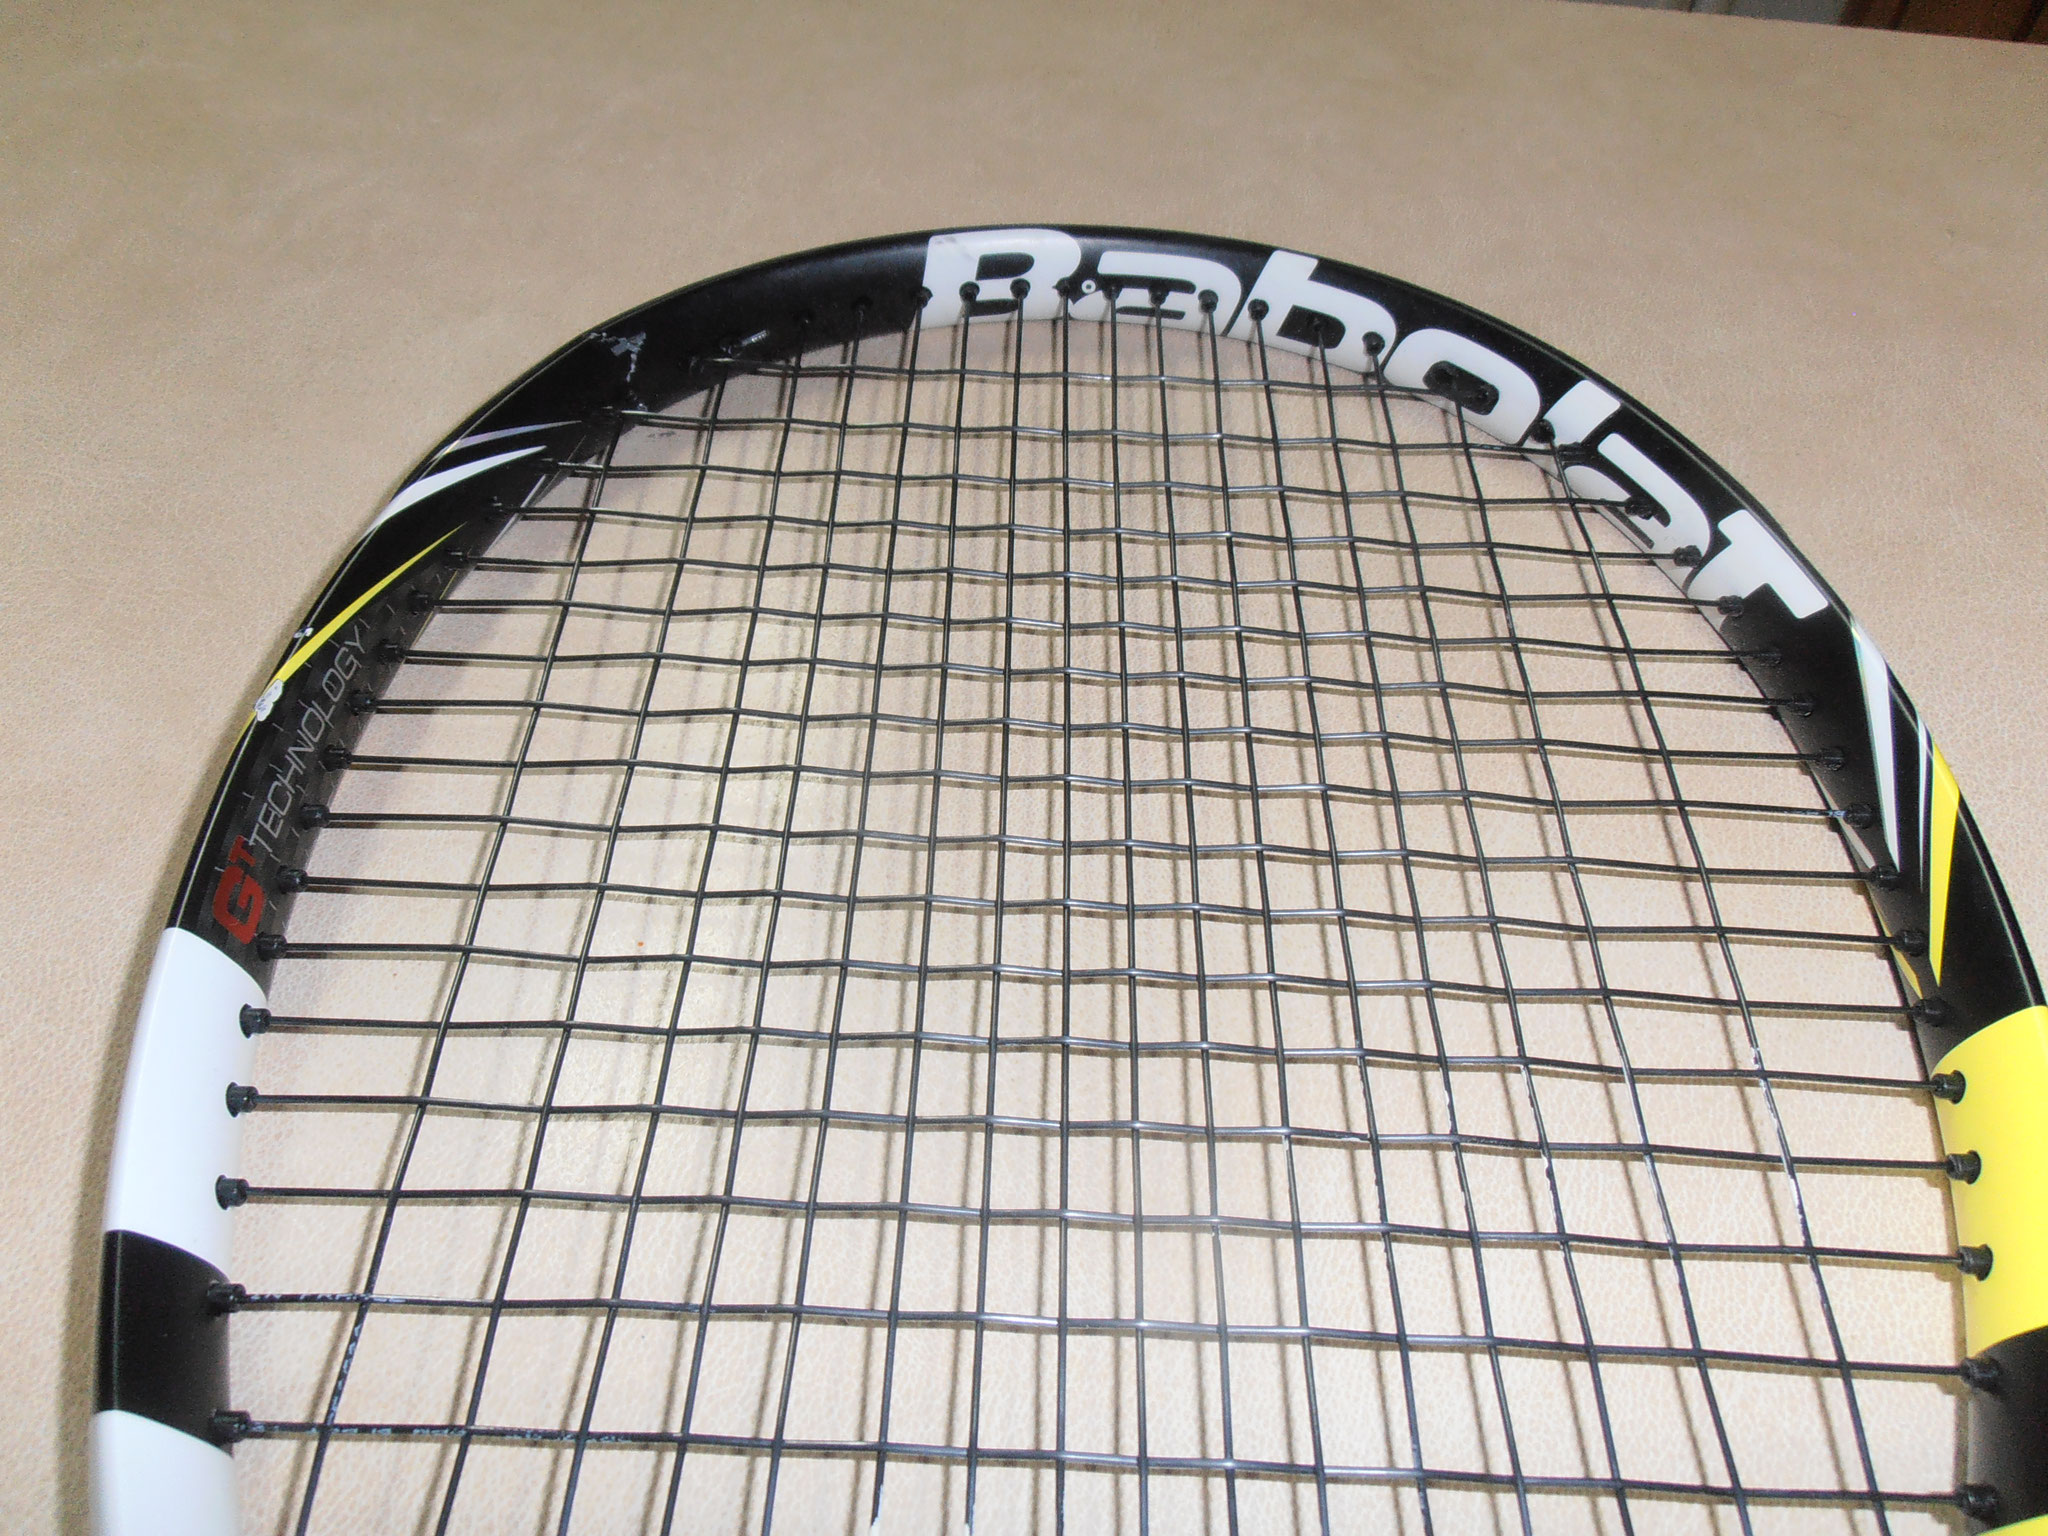 Tennis Racquet - Before Repair